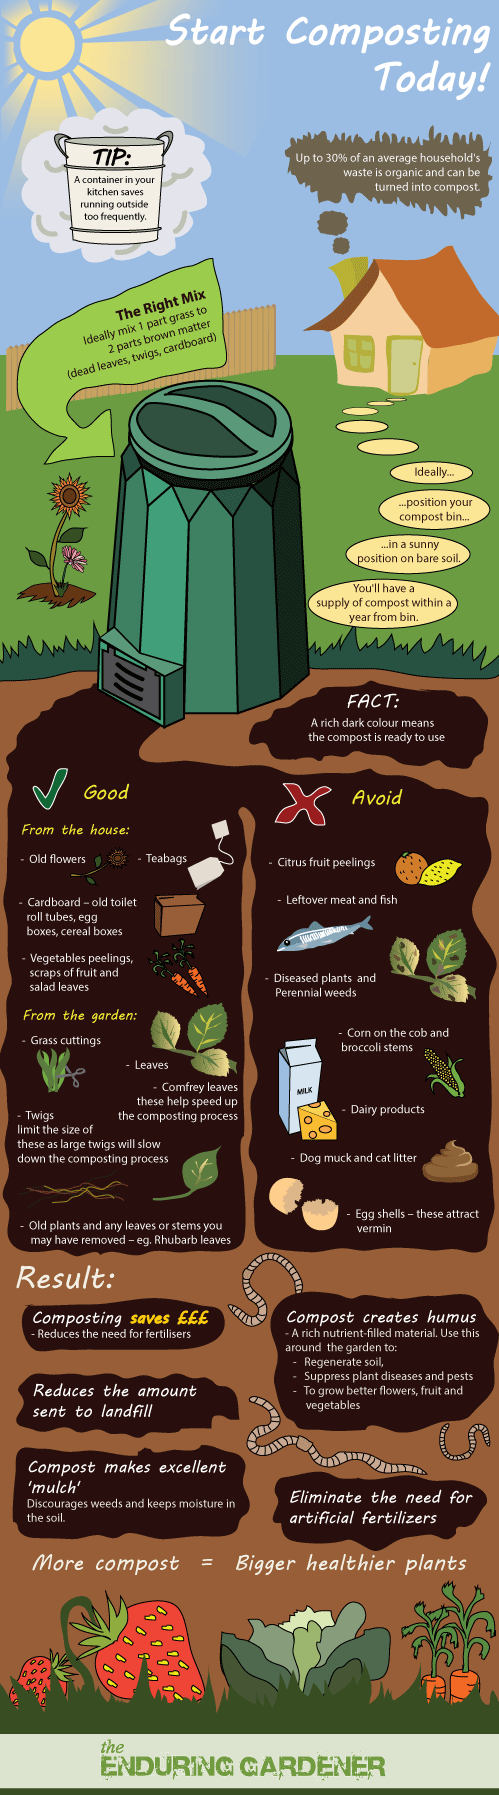 ultimate-guide-to-composting